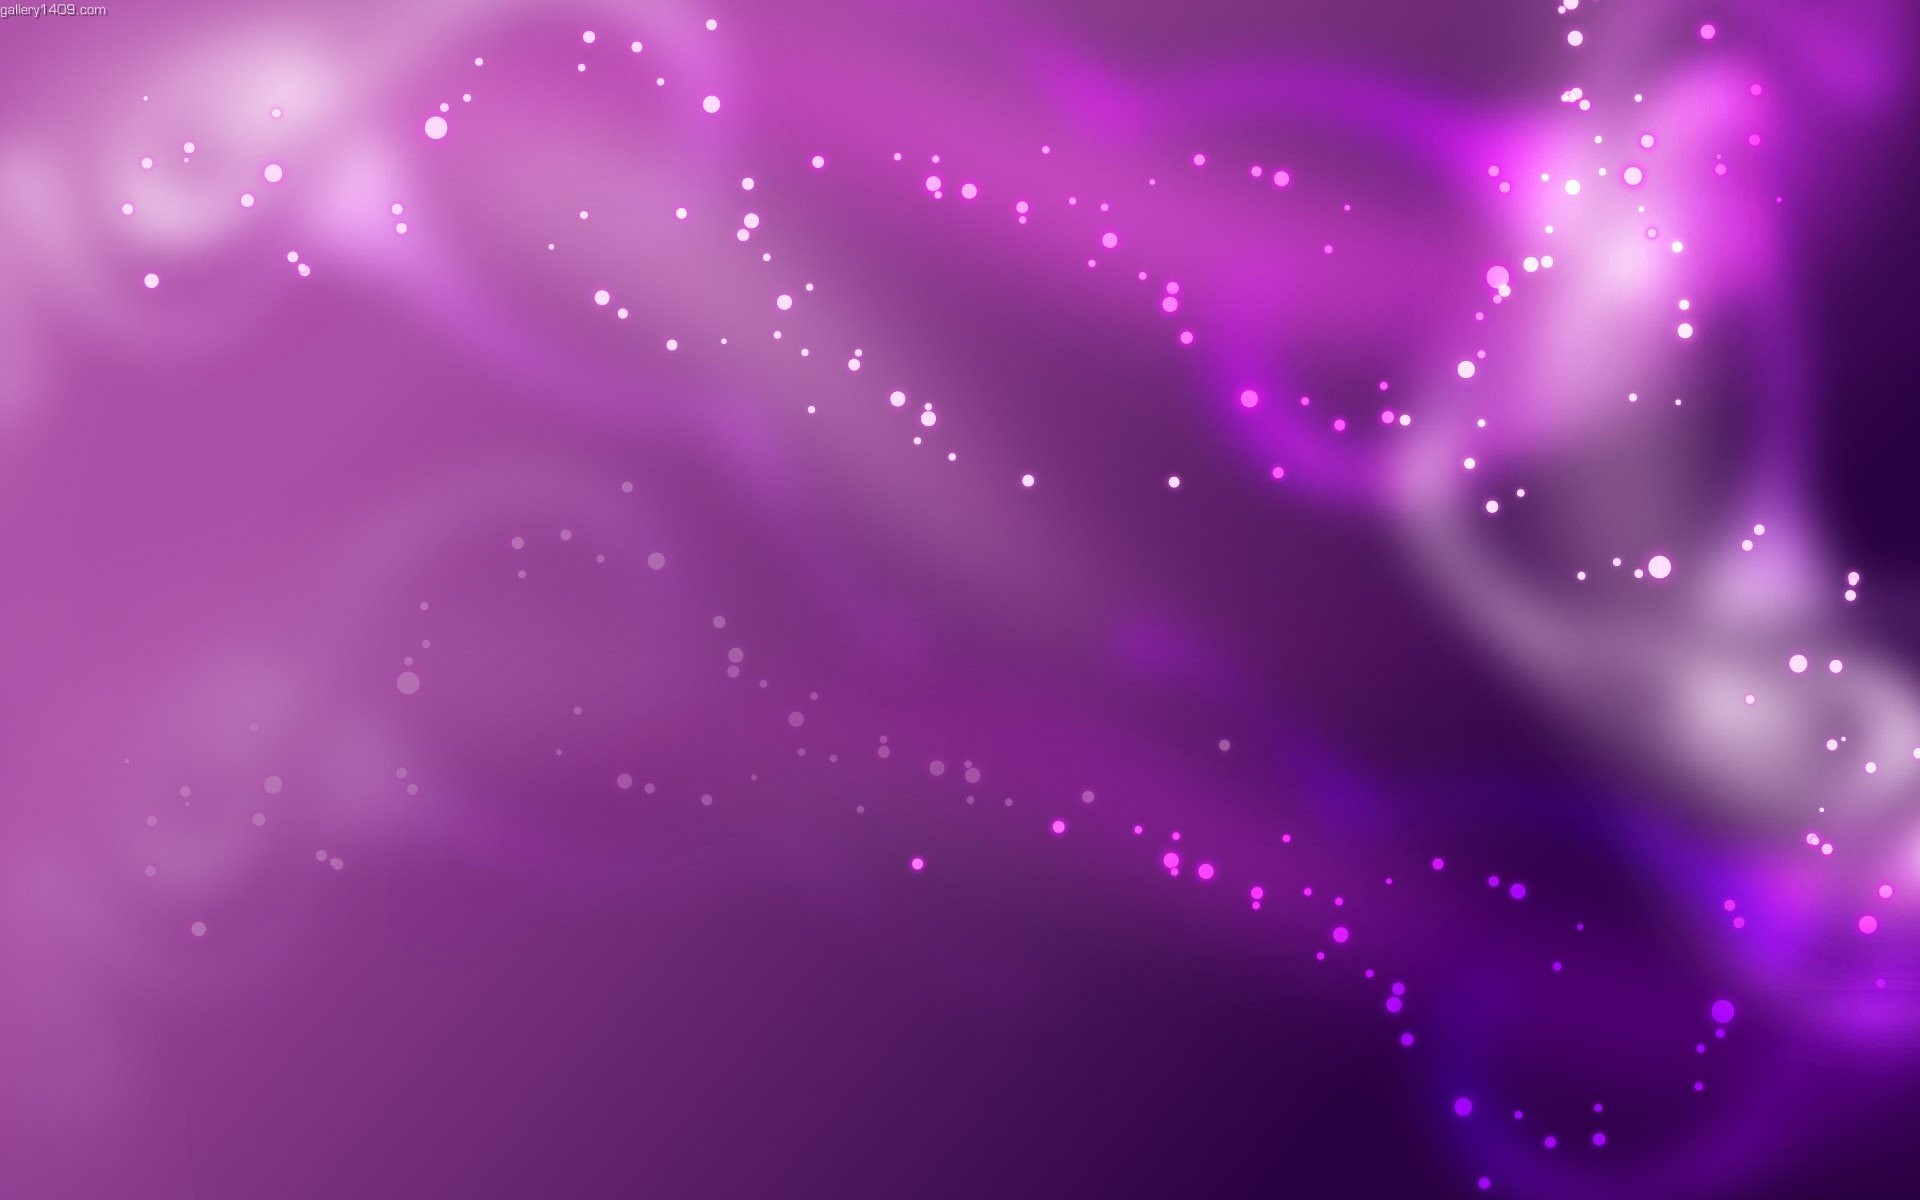 1920x1200 girly-laptop-wallpapers-picture-colour-particles-backgrounds.jpg (